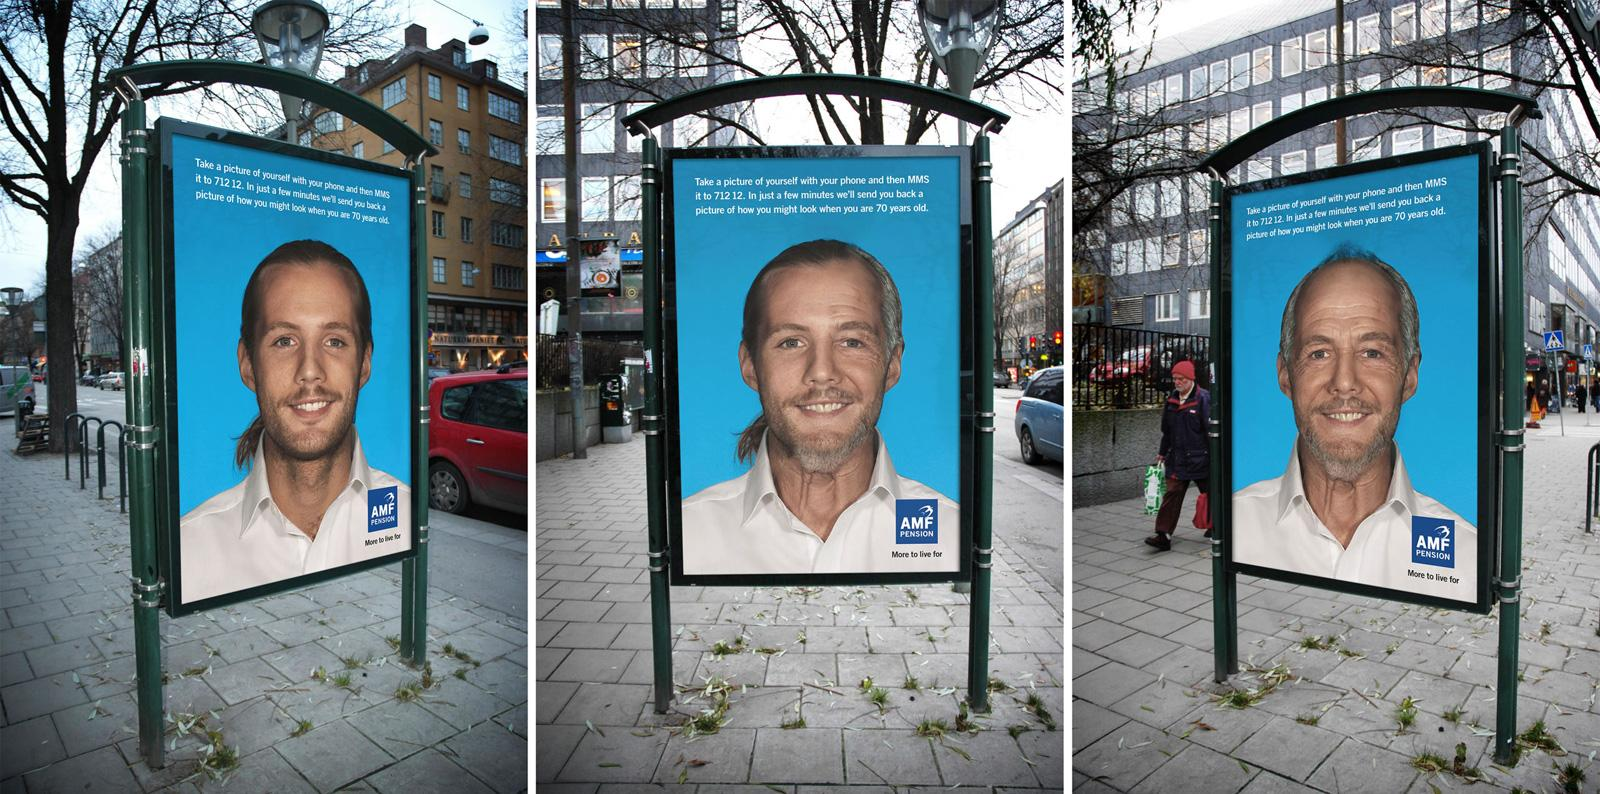 AMF Pension Outdoor Ad -  Old, 1